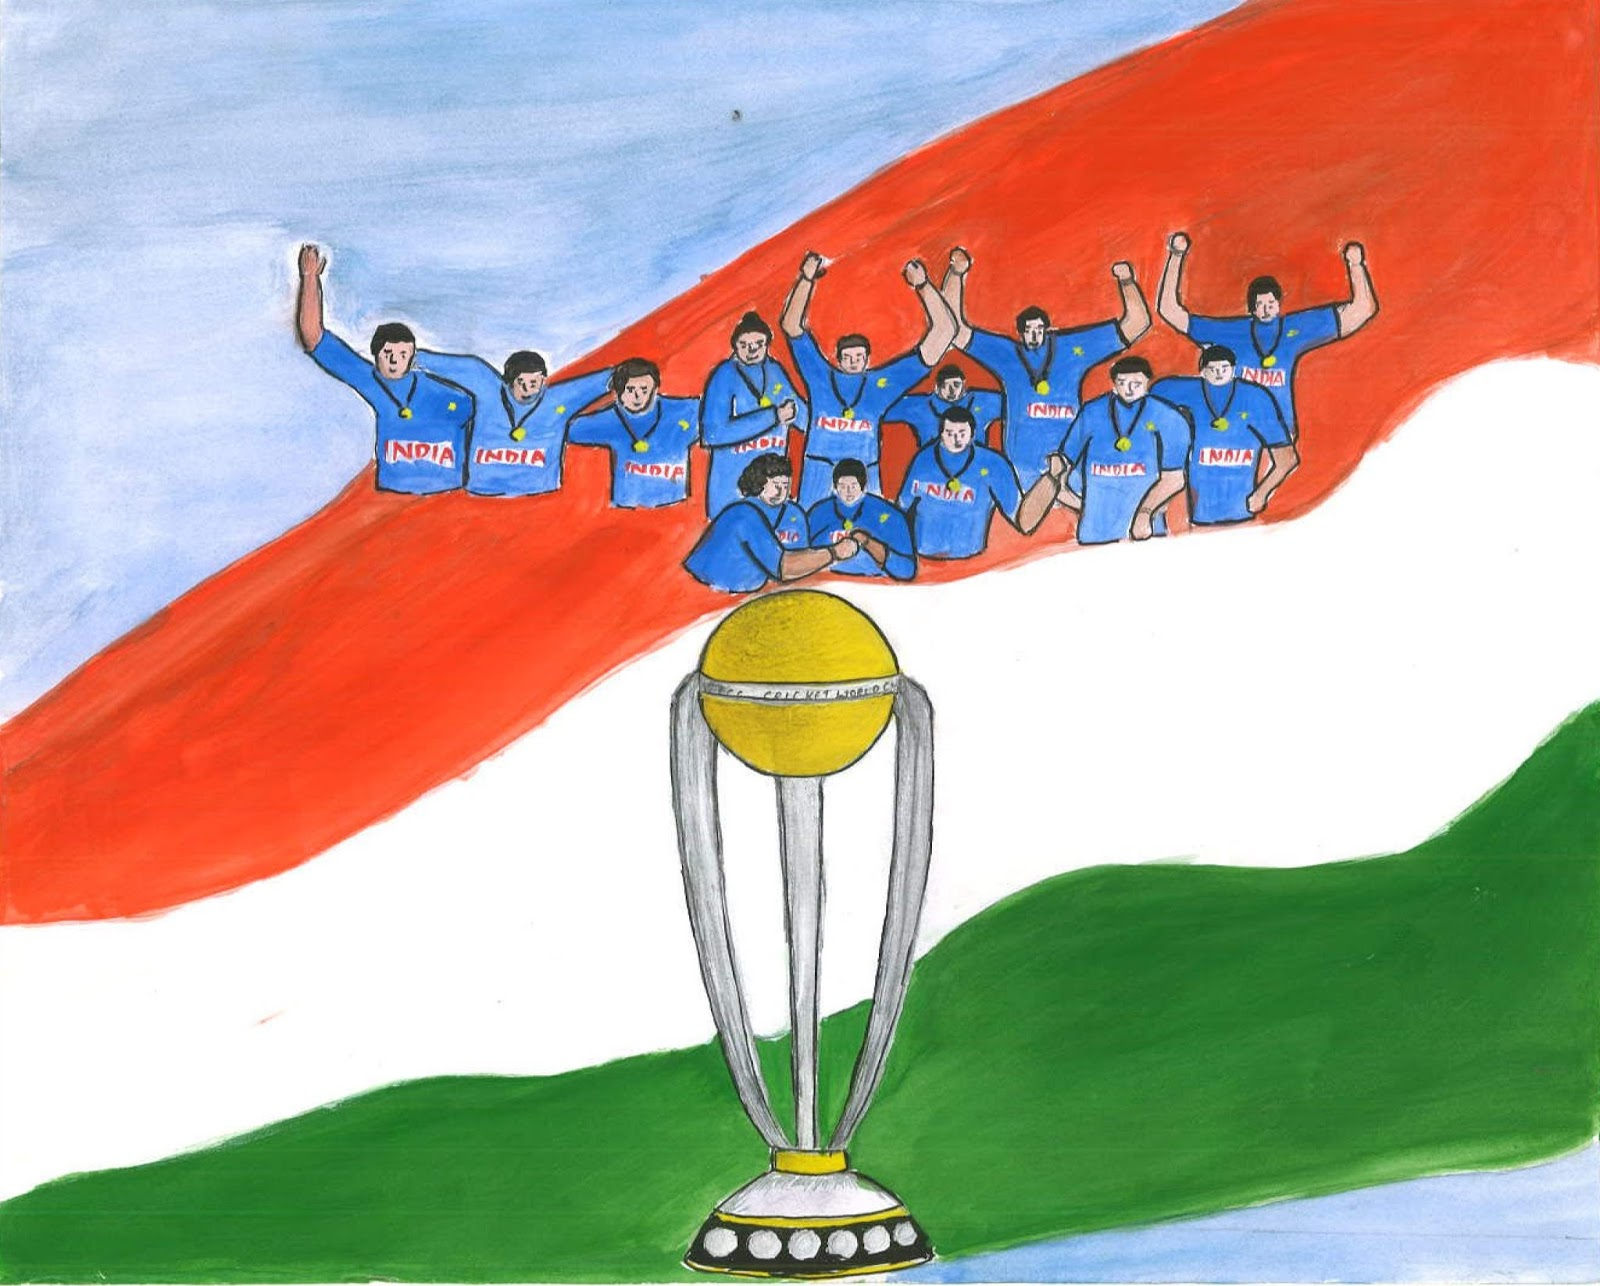 India winning the world cup 1983 or 2011 by raienu sam of x b